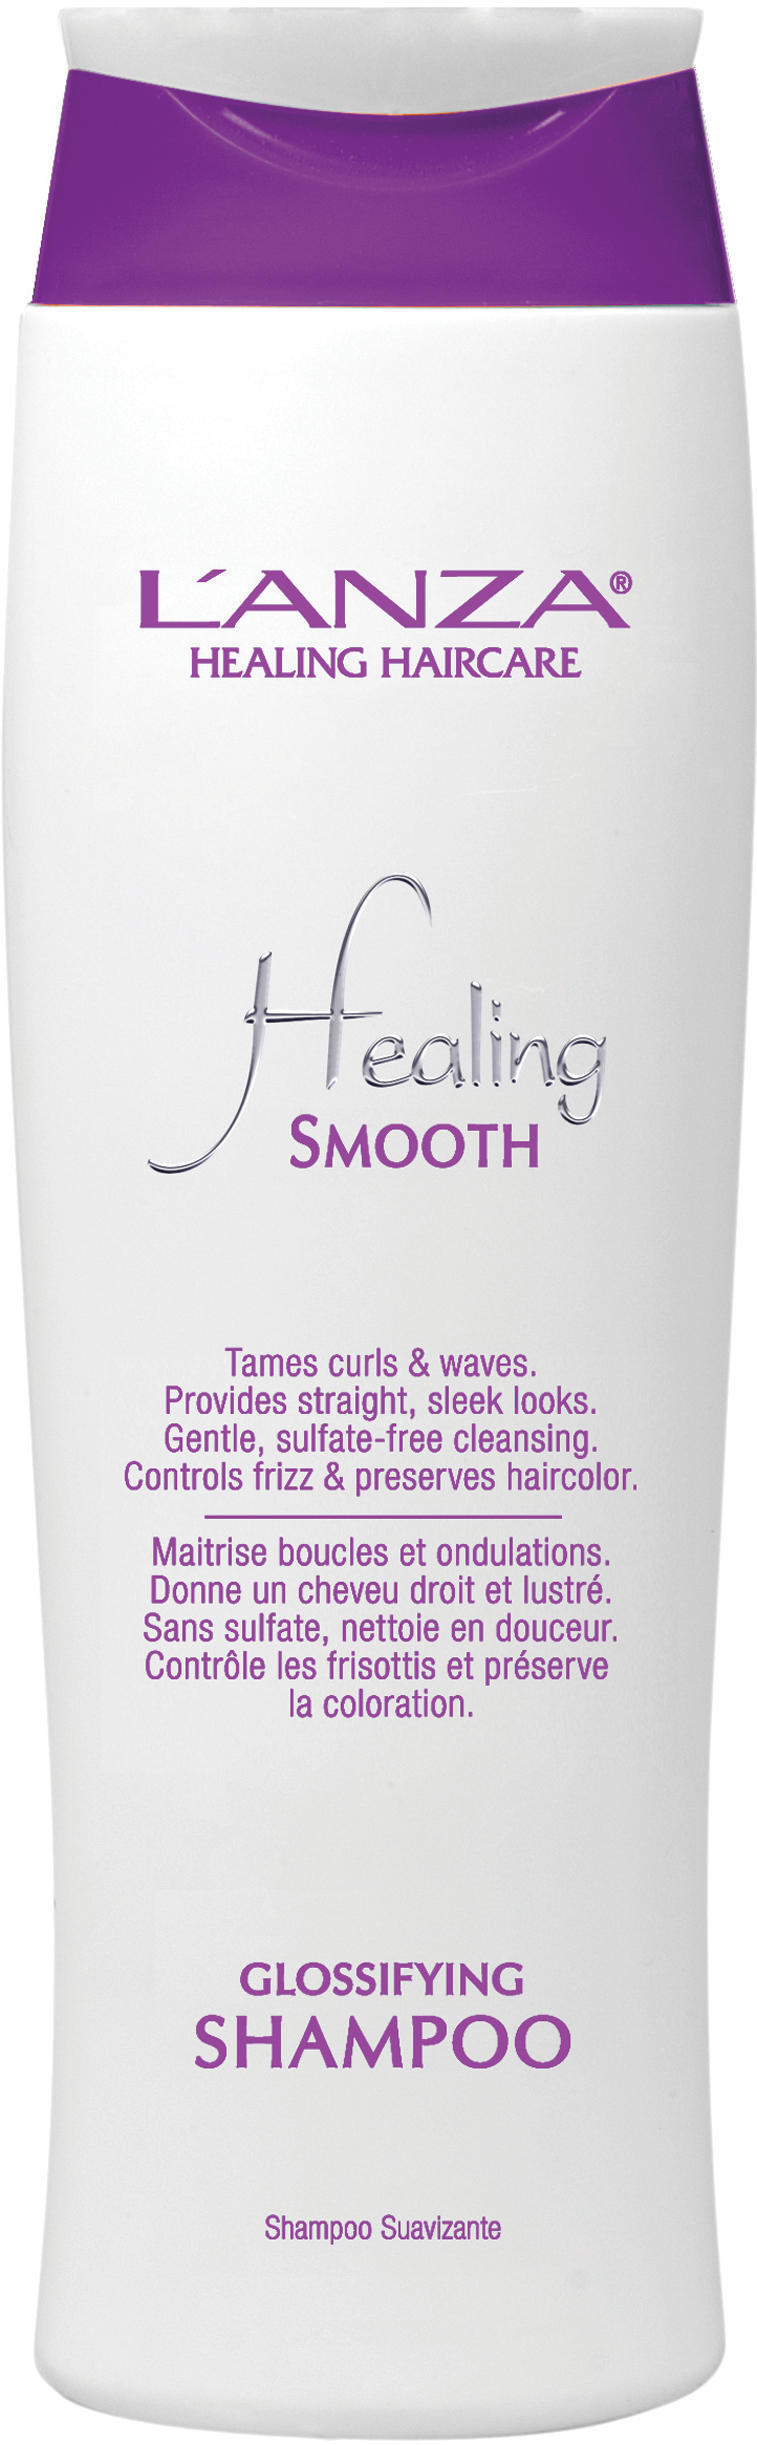 Lanza Healing Smooth - Glossifying Shampoo, 300ml